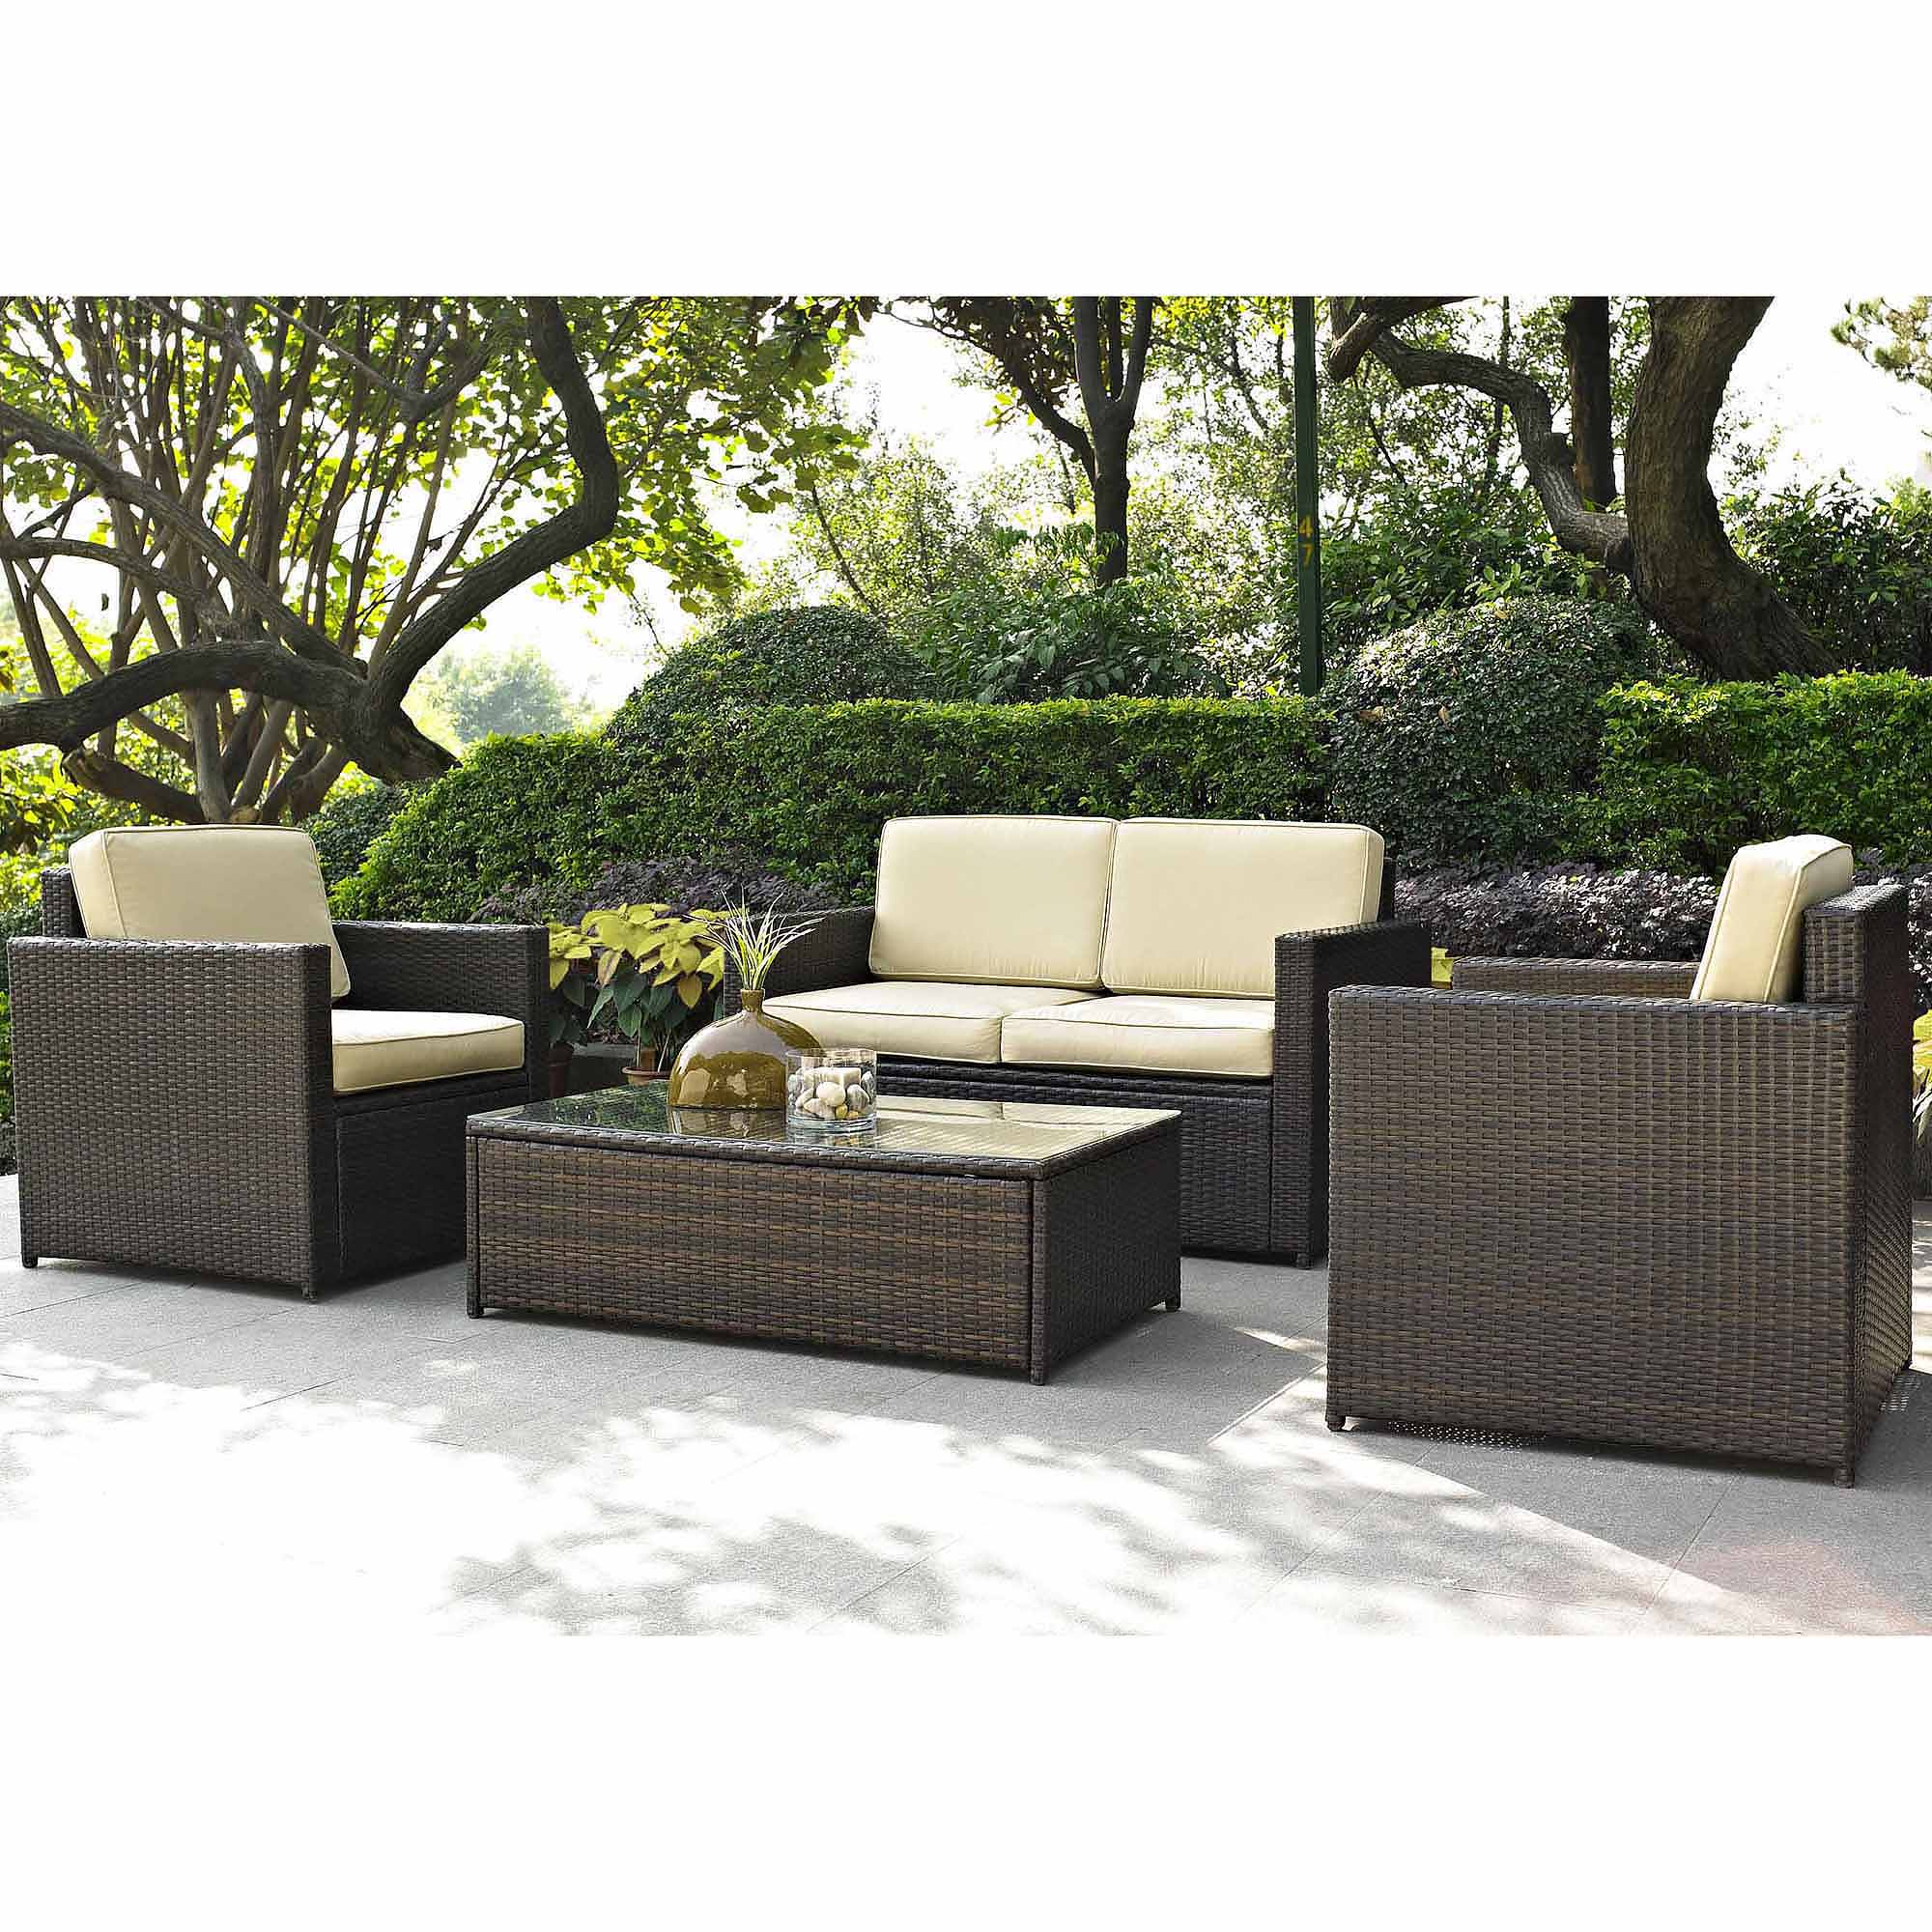 Beautiful Best Choice Products Outdoor Garden Patio 4pc Cushioned Seat Black Wicker  Sofa outdoor wicker furniture